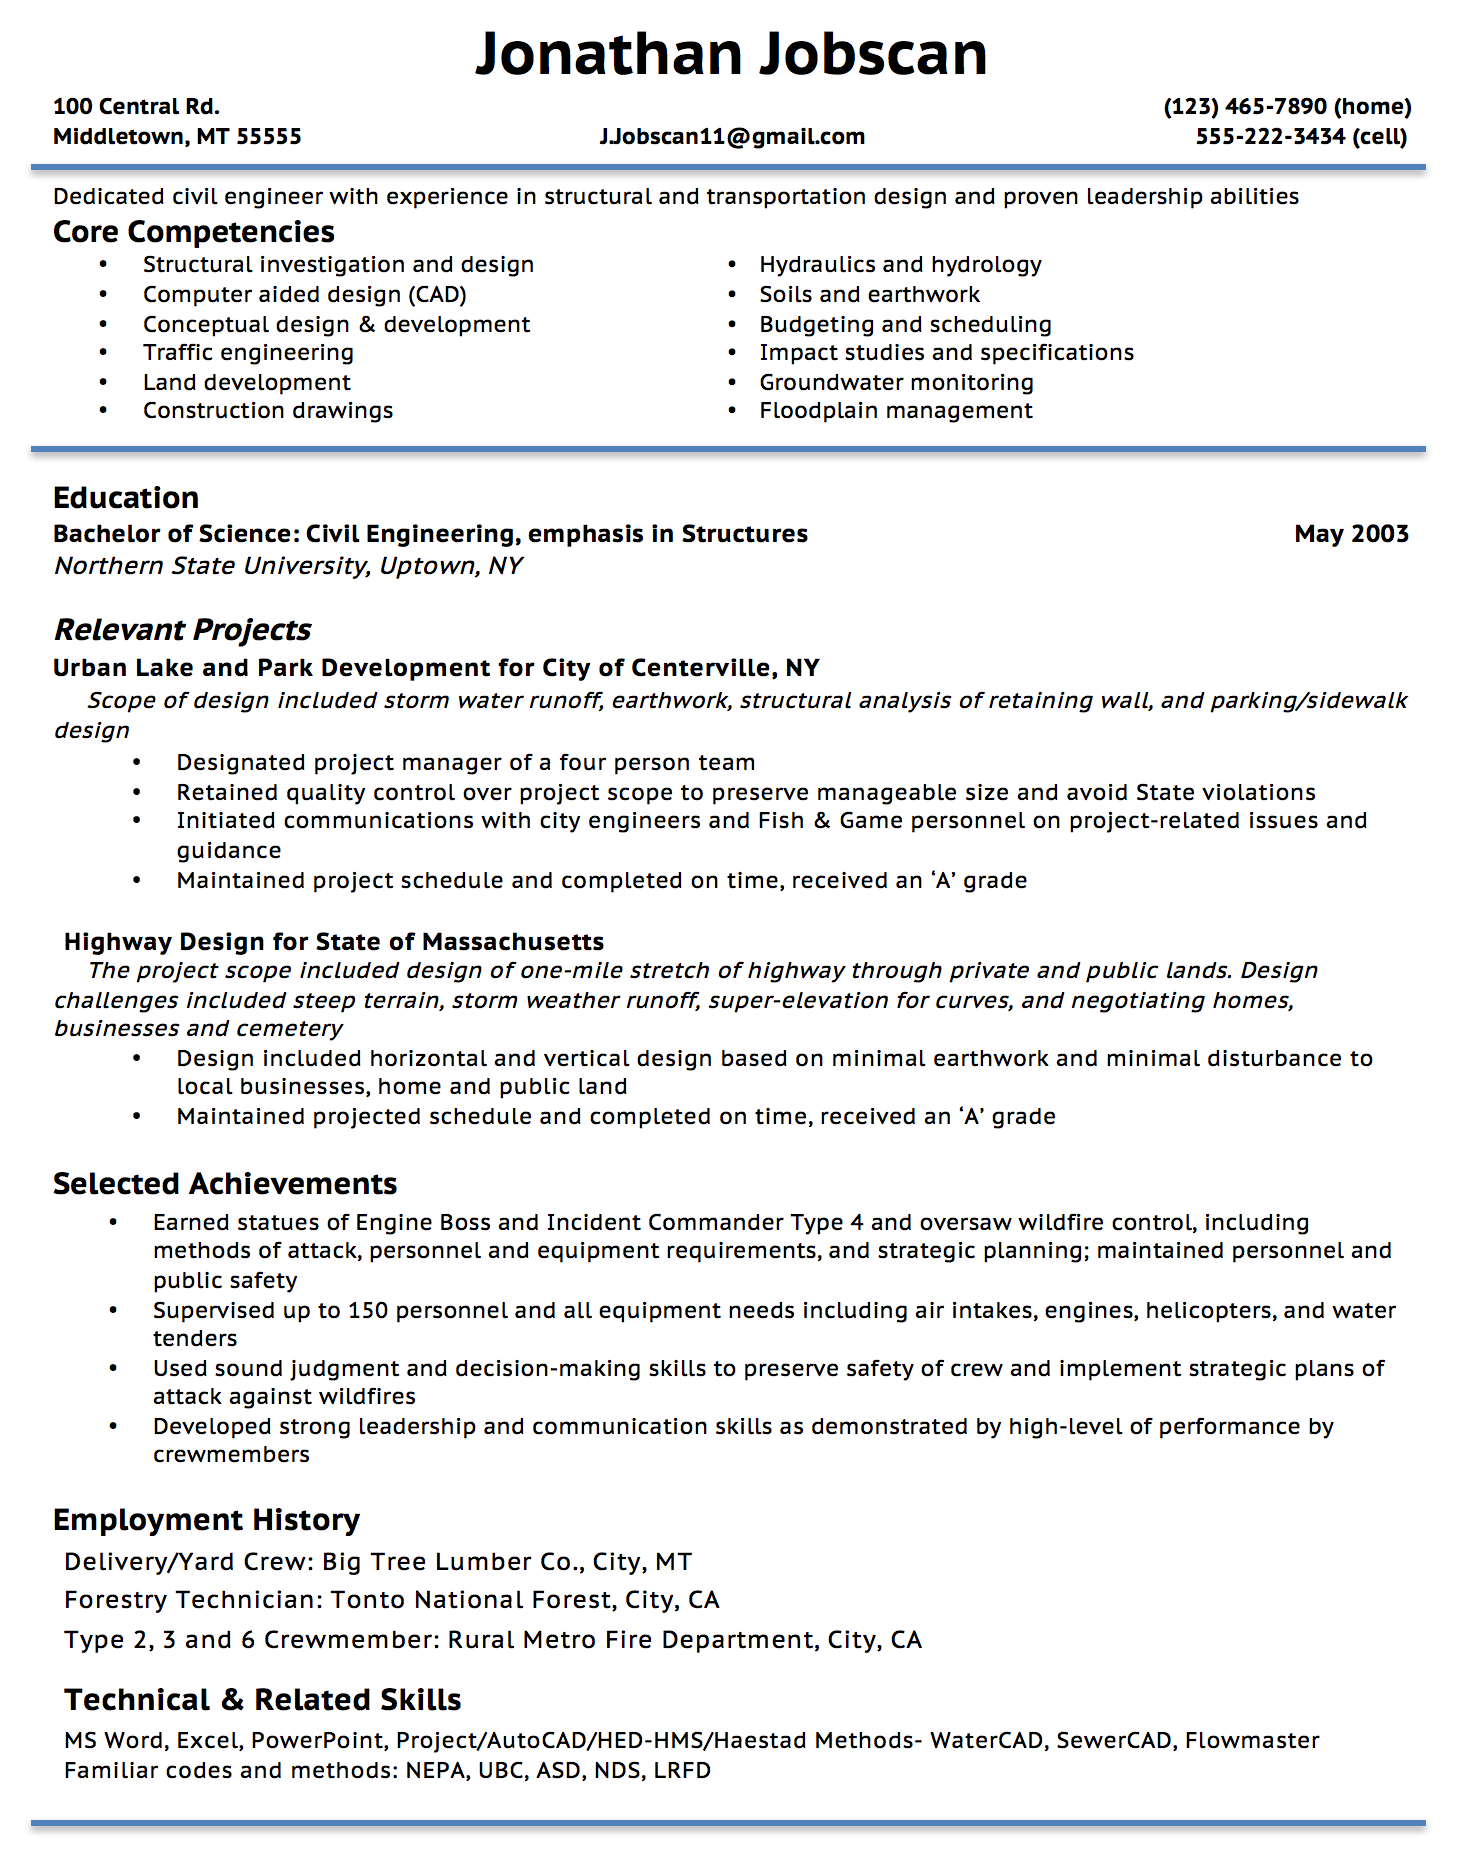 Opposenewapstandardsus  Marvellous Resume Writing Guide  Jobscan With Excellent Example Of A Functional Resume Format With Endearing Adjunct Faculty Resume Also Babysitting Resume Templates In Addition Resume Secretary And Sections On A Resume As Well As Working Knowledge Resume Additionally Resume Template Design From Jobscanco With Opposenewapstandardsus  Excellent Resume Writing Guide  Jobscan With Endearing Example Of A Functional Resume Format And Marvellous Adjunct Faculty Resume Also Babysitting Resume Templates In Addition Resume Secretary From Jobscanco